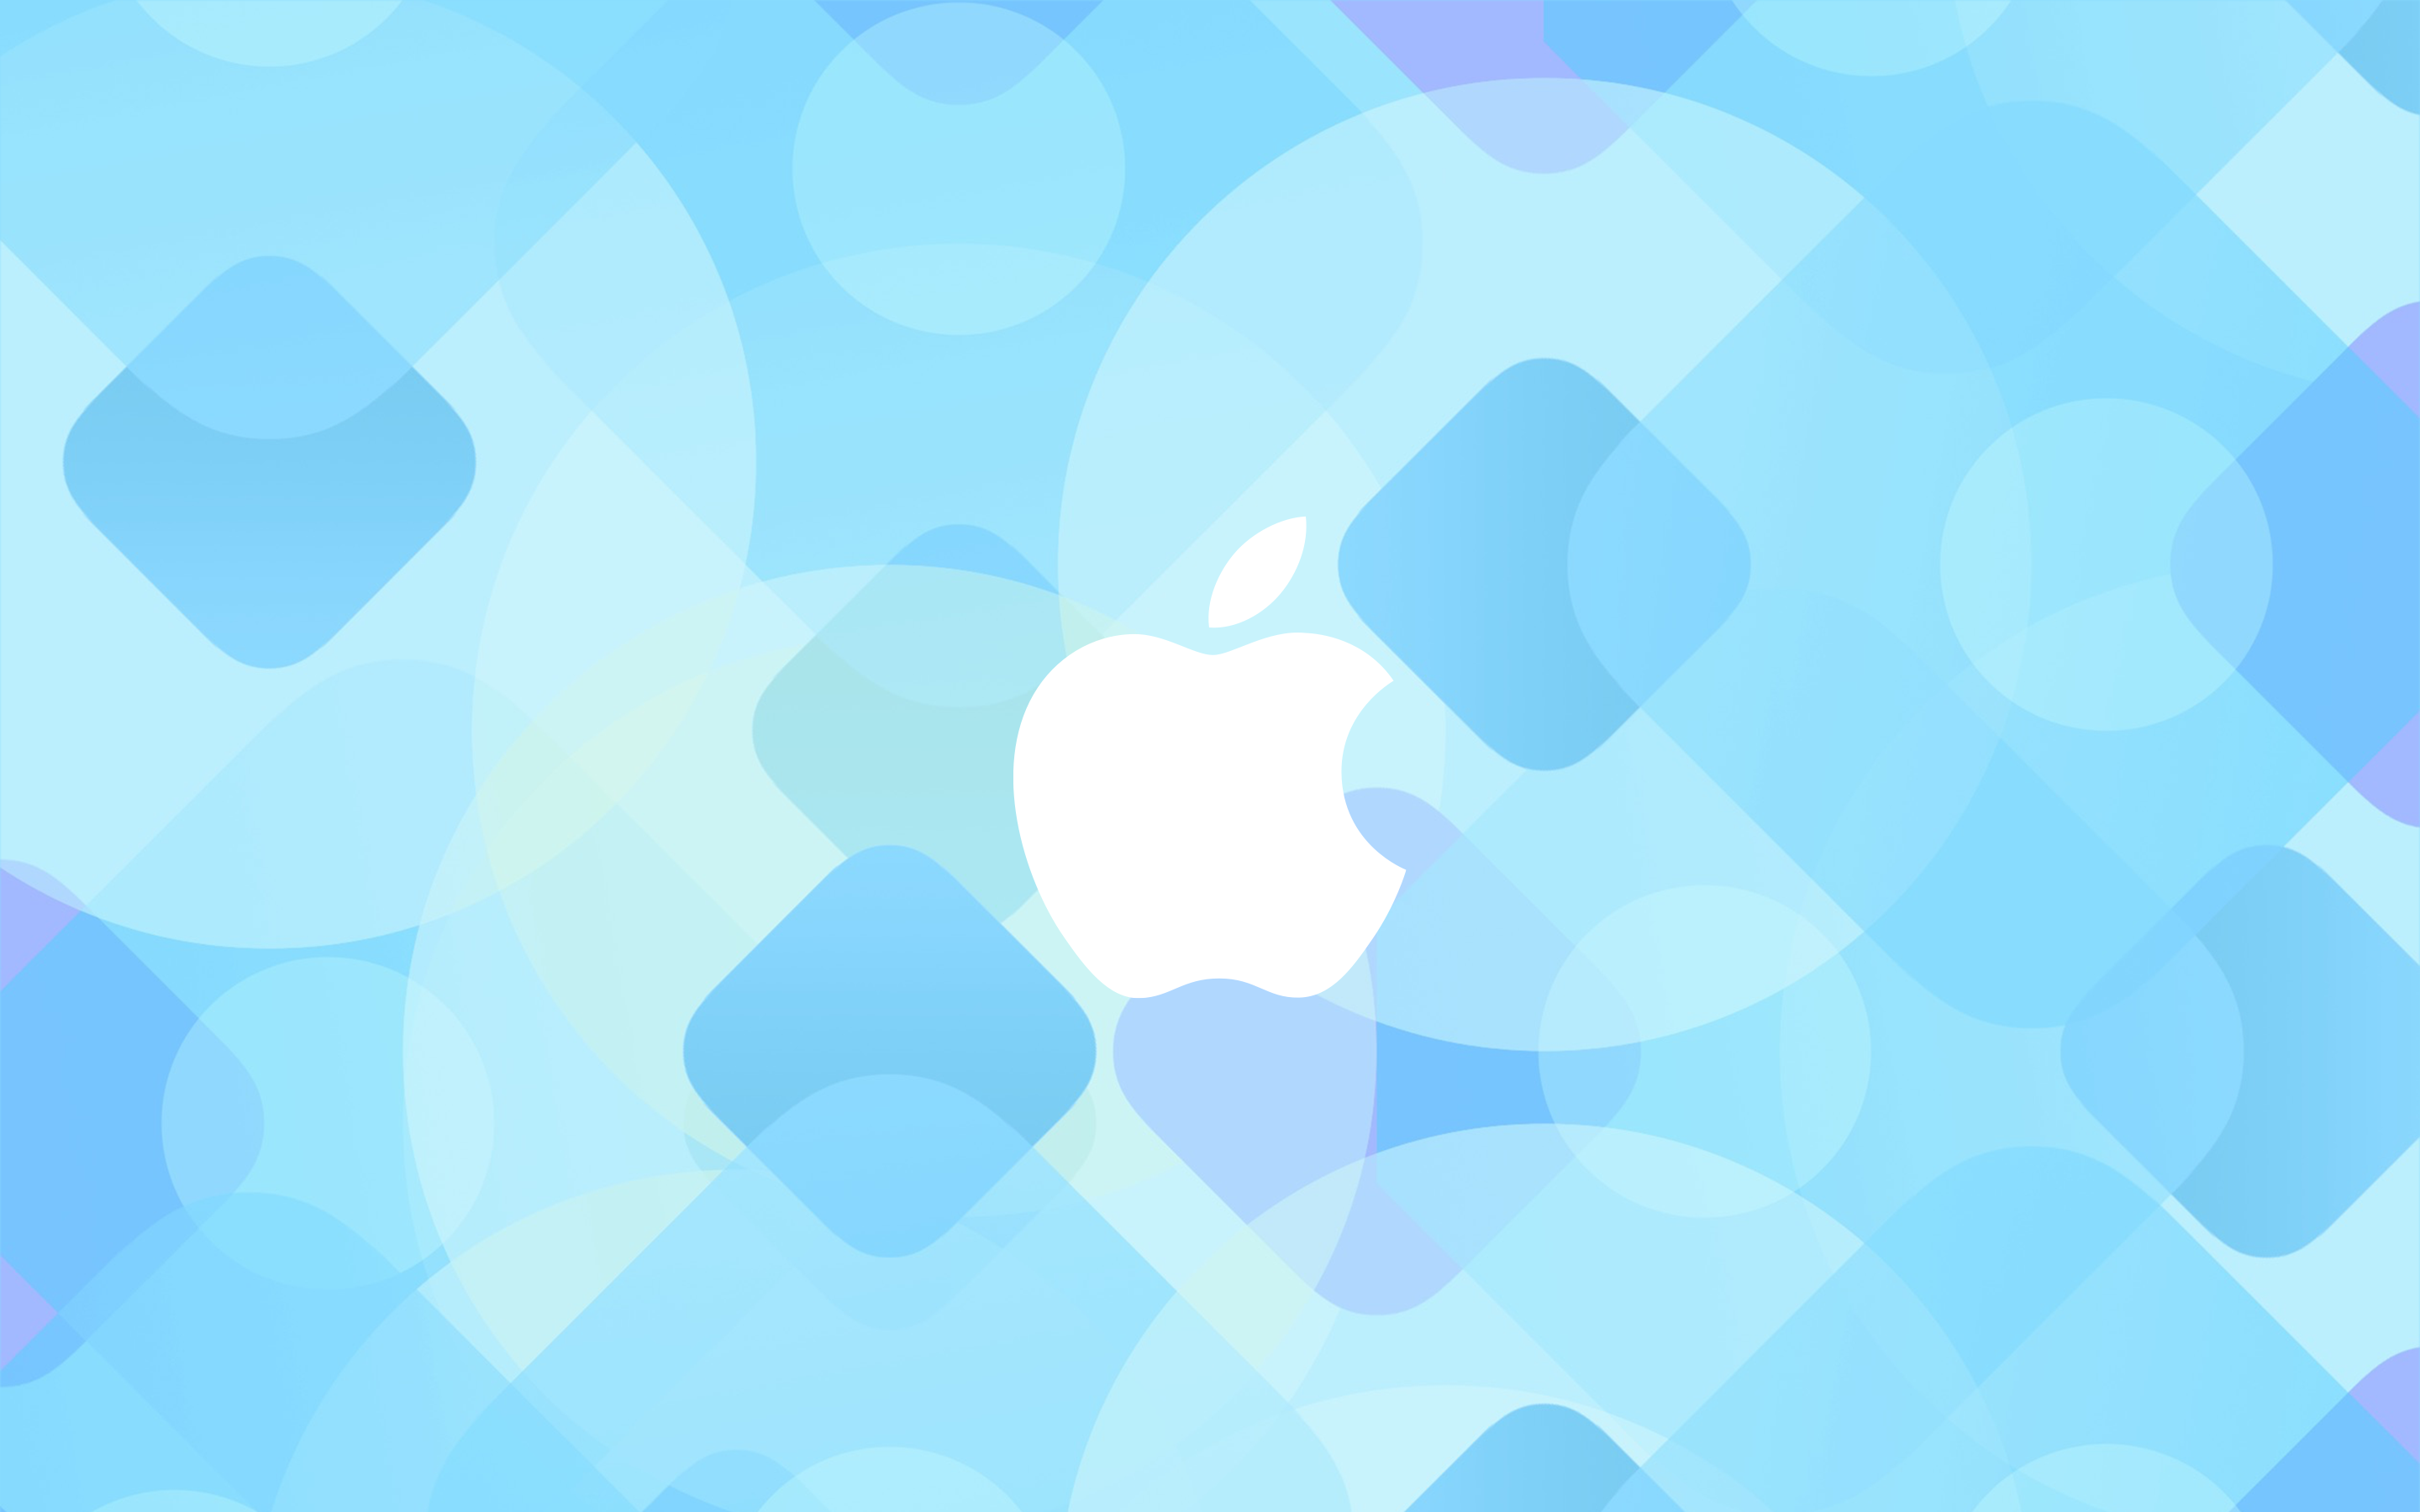 Fresh Wwdc 2015 Wallpapers